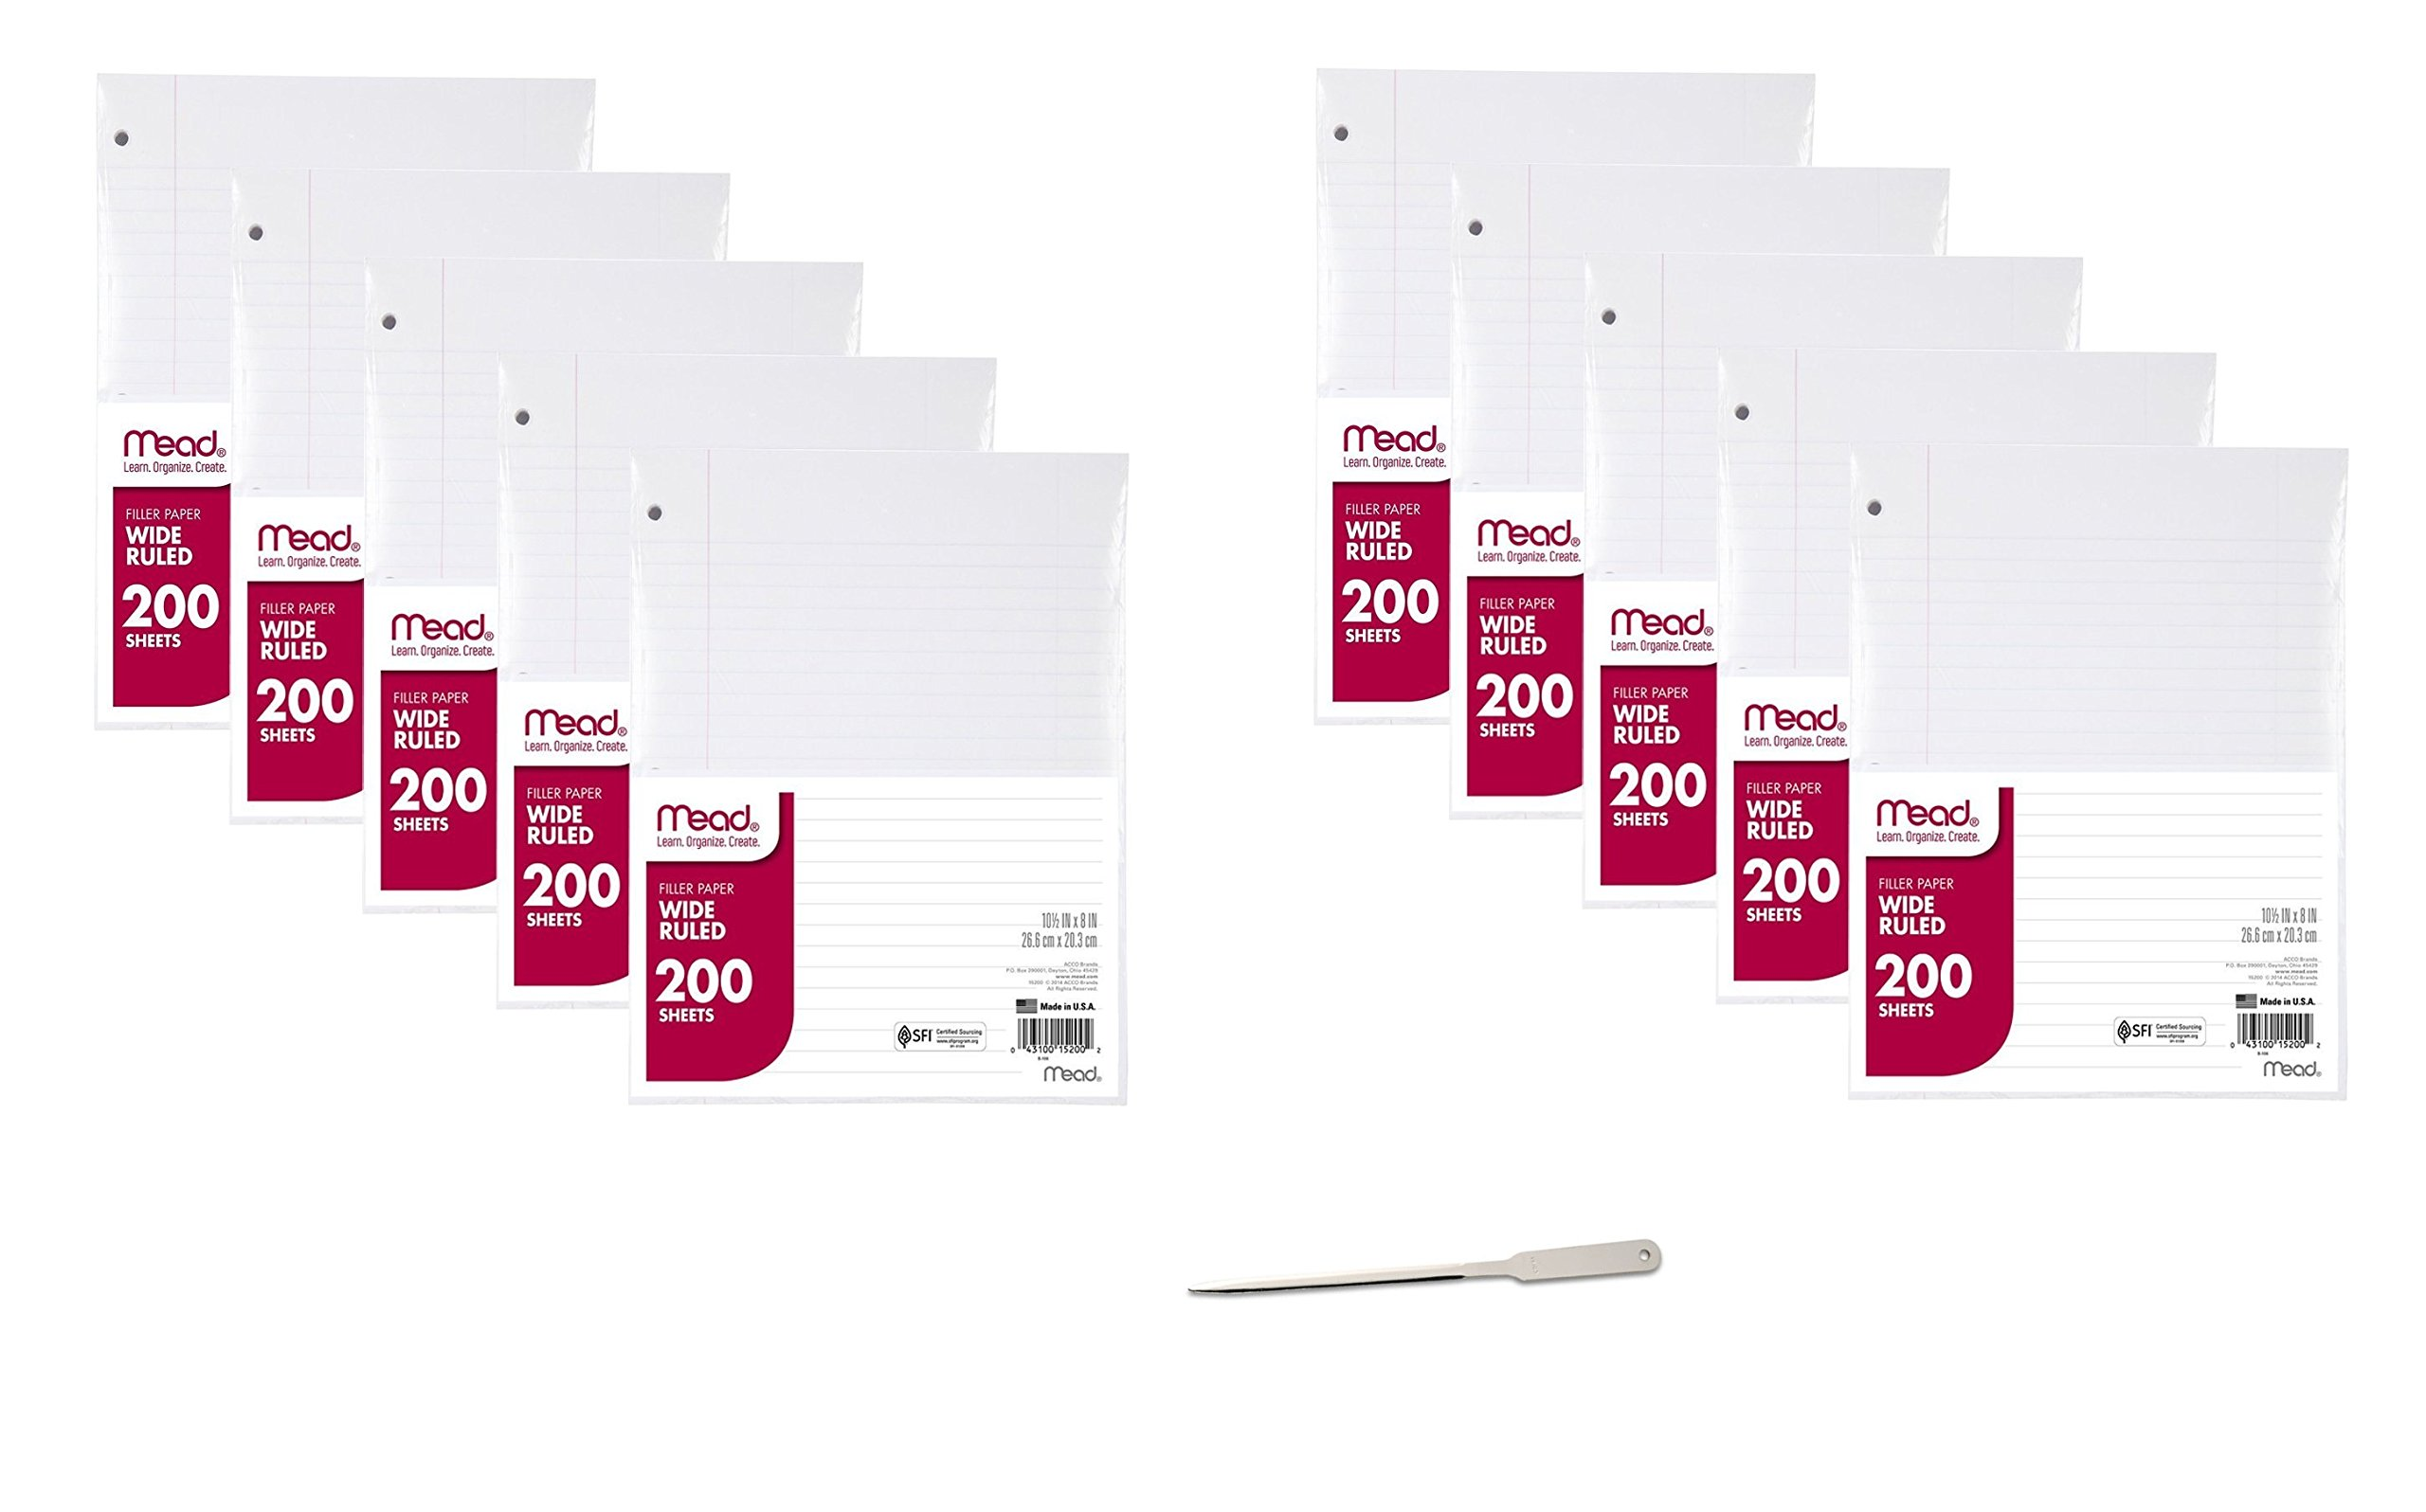 Filler Paper by Mead, Wide Ruled, 200 Sheets, 10 Pack, 2000 Sheets Total (15200) - Bundle Includes Universal Letter Opener